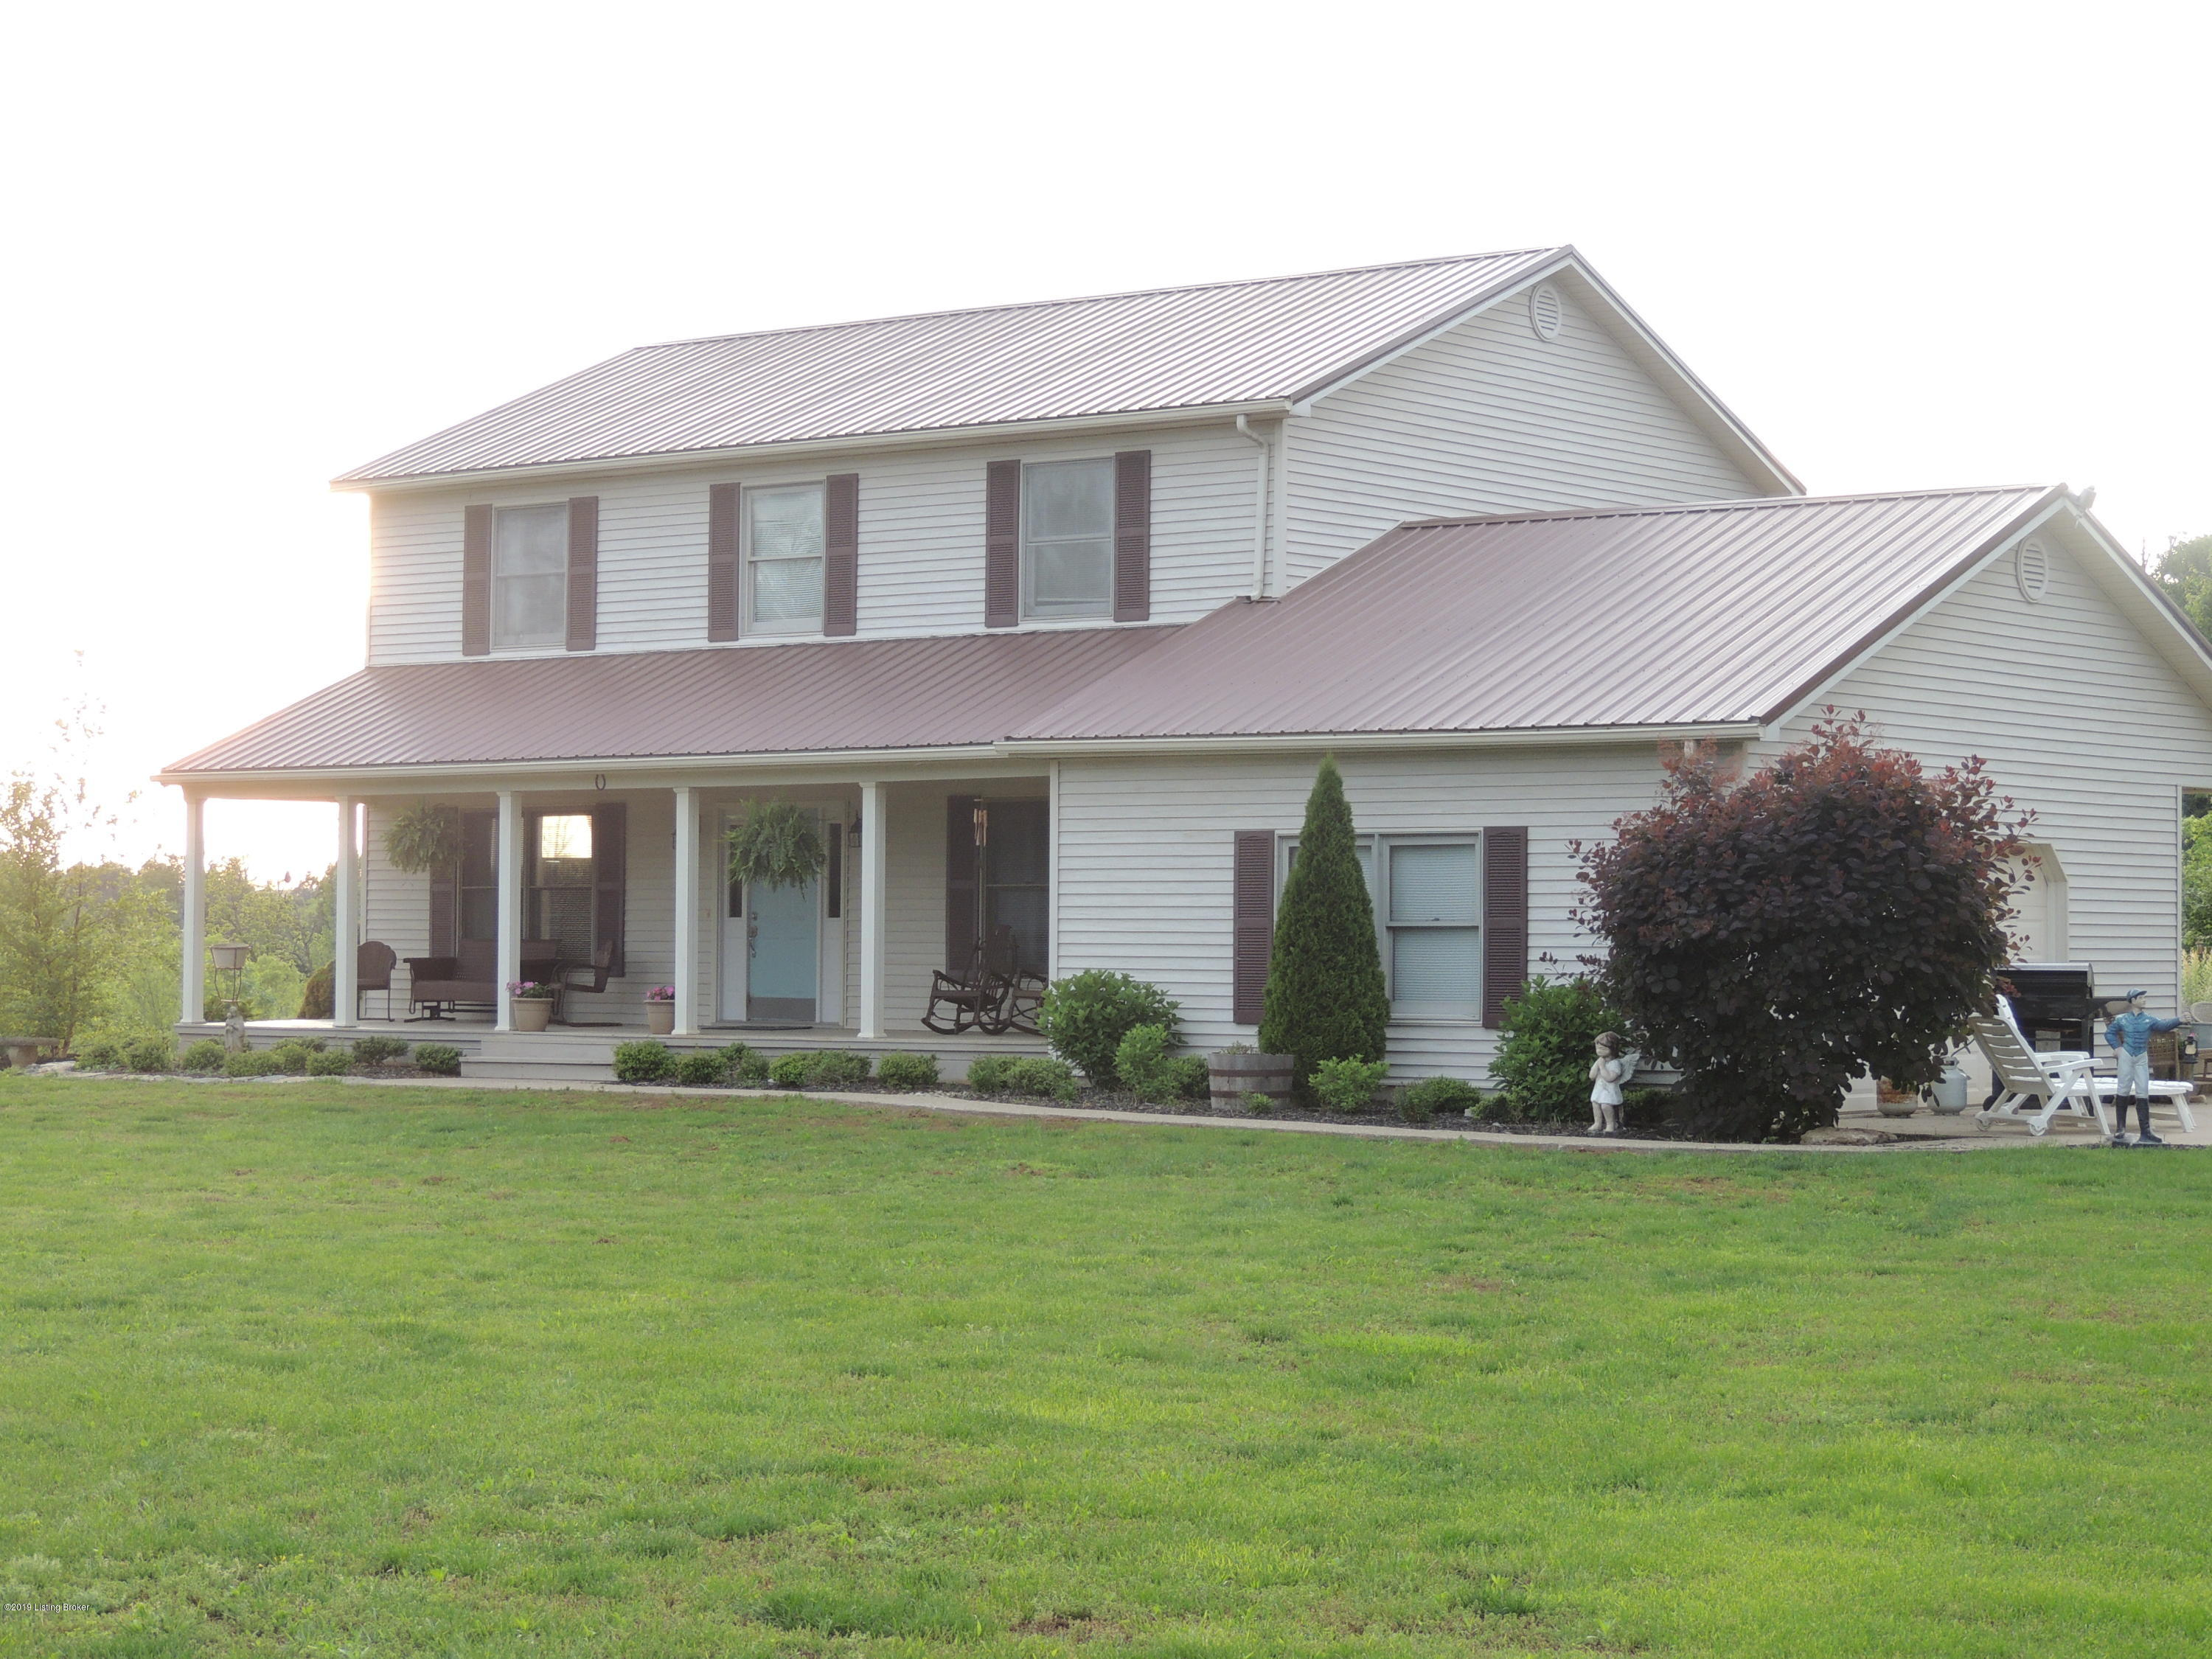 2730 Mobley Mill Rd, Coxs Creek, Kentucky 40013, 4 Bedrooms Bedrooms, 9 Rooms Rooms,3 BathroomsBathrooms,Residential,For Sale,Mobley Mill,1532696